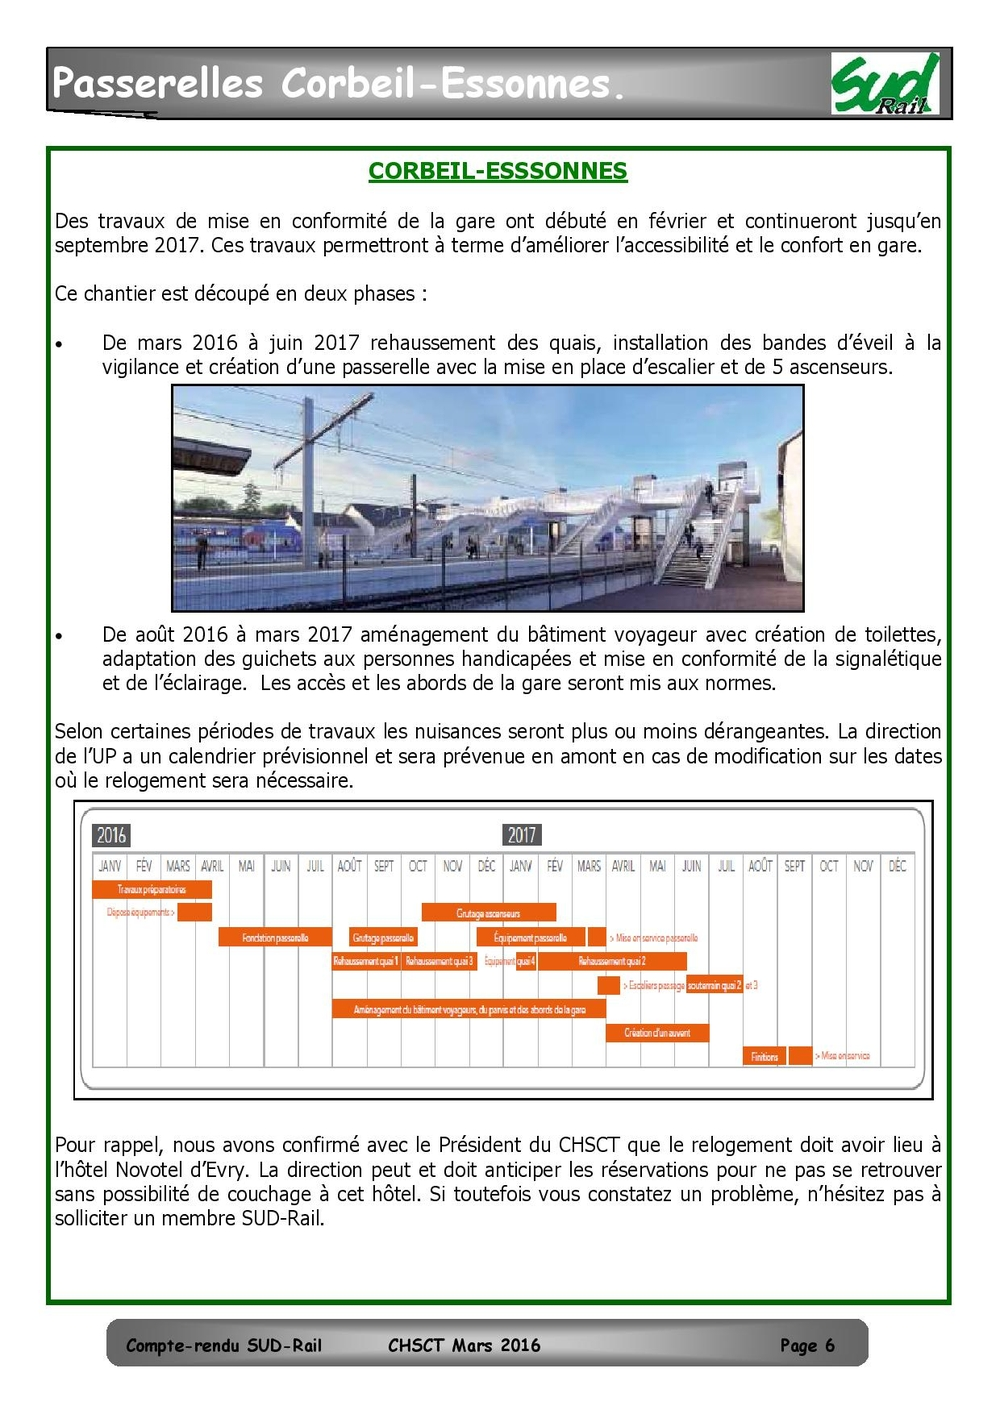 etpse crchsct 03-2016-page-006